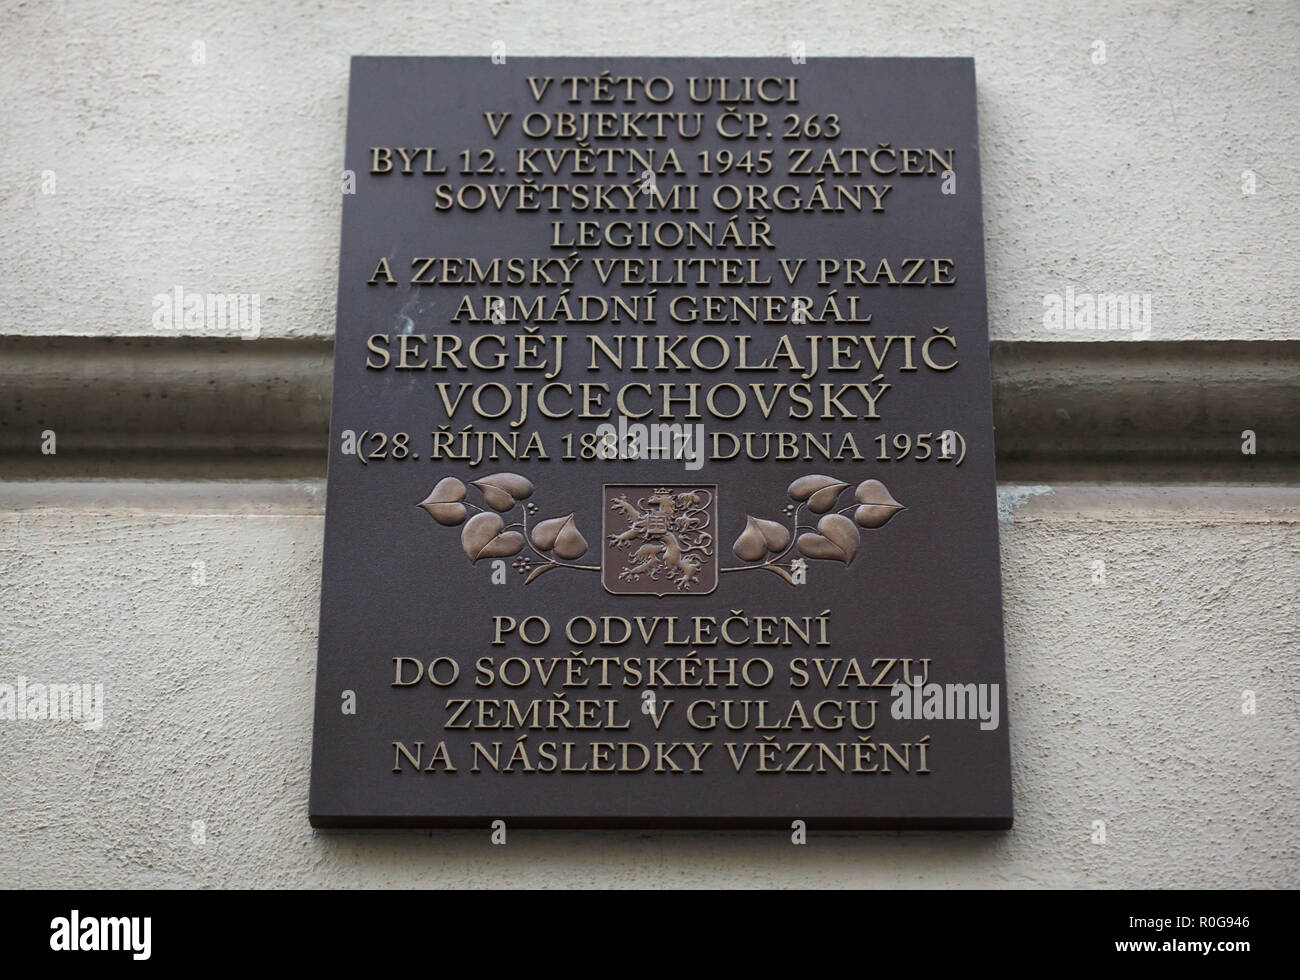 Commemorative plaque next to the house where Czechoslovak general Sergej Vojcechovský (Sergei Wojciechowski) was arrested by the SMERSH on 12 May 1945 in Konviktská Street in Prague, Czech Republic. Sergej Vojcechovský was a military commander in the White Army during the Russian Civil War and then lived in exile in Czechoslovakia and served in the Czechoslovak Army. He was arrested by the SMERSH (Soviet military counterintelligence service) and sent to Moscow shortly after the Red Army liberated Prague in May 1945. He died in prison on 7 April 1951 in the Ozerlag Labour Camp of the Gulag in T - Stock Image